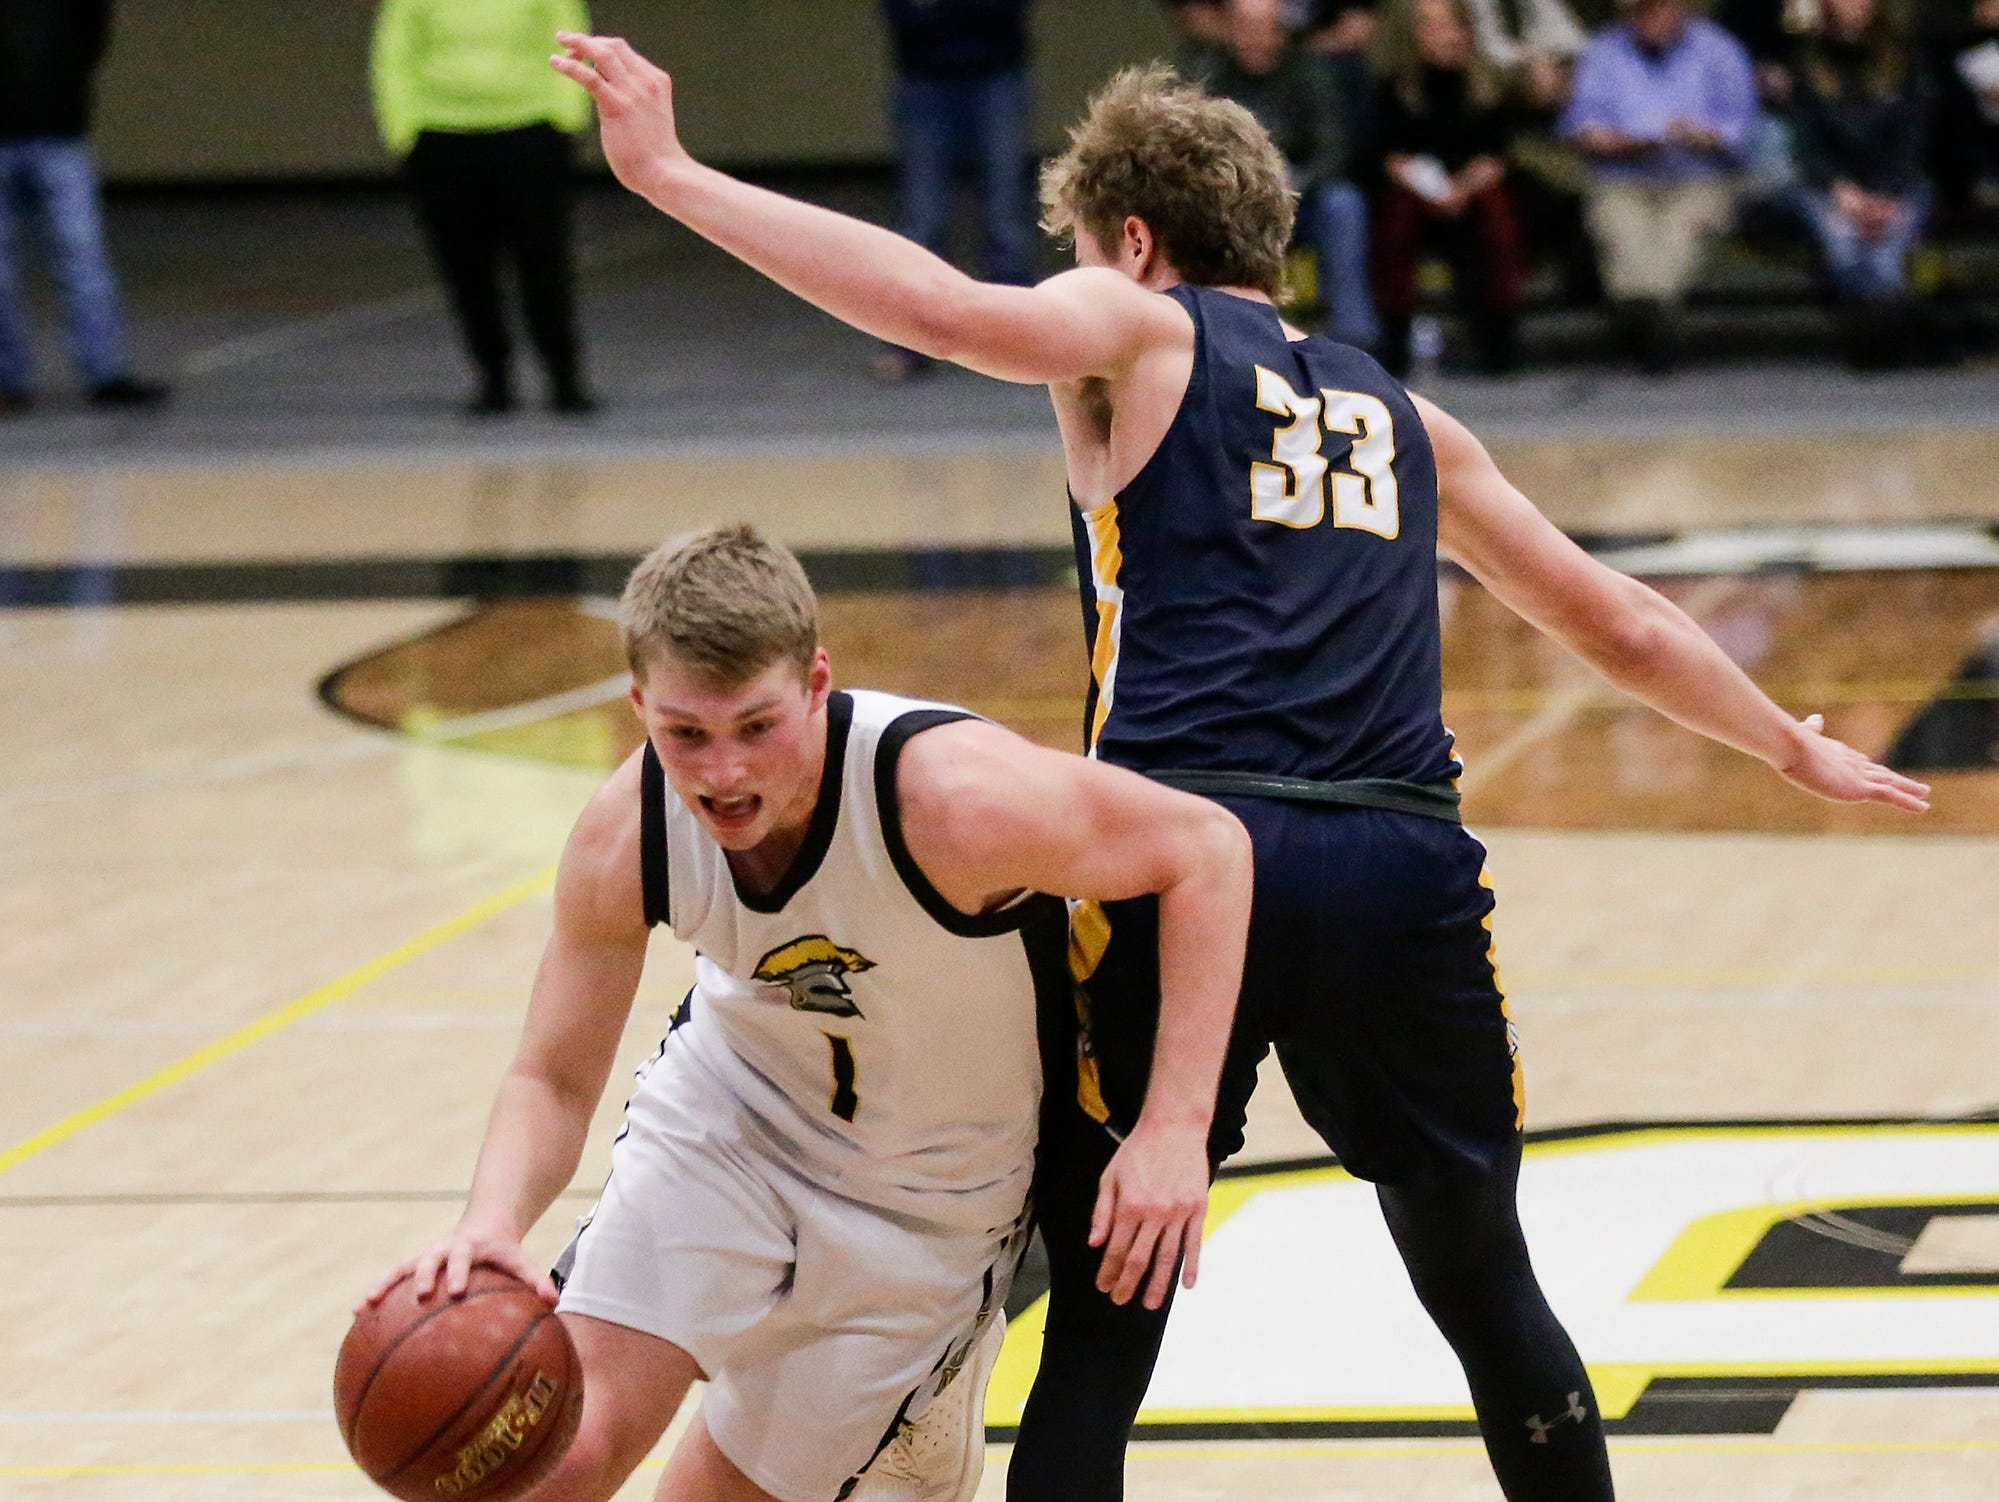 Waupun High School boys basketball's Marcus Domask (1) works his way around Brookfield Academy's Logan Landgers (33) during their WIAA division 3 sectional final game Saturday, March 9, 2019 in Brown Deer, Wis. Waupun won the game 64-58 and will advance to the state tournament. Doug Raflik/USA TODAY NETWORK-Wisconsin